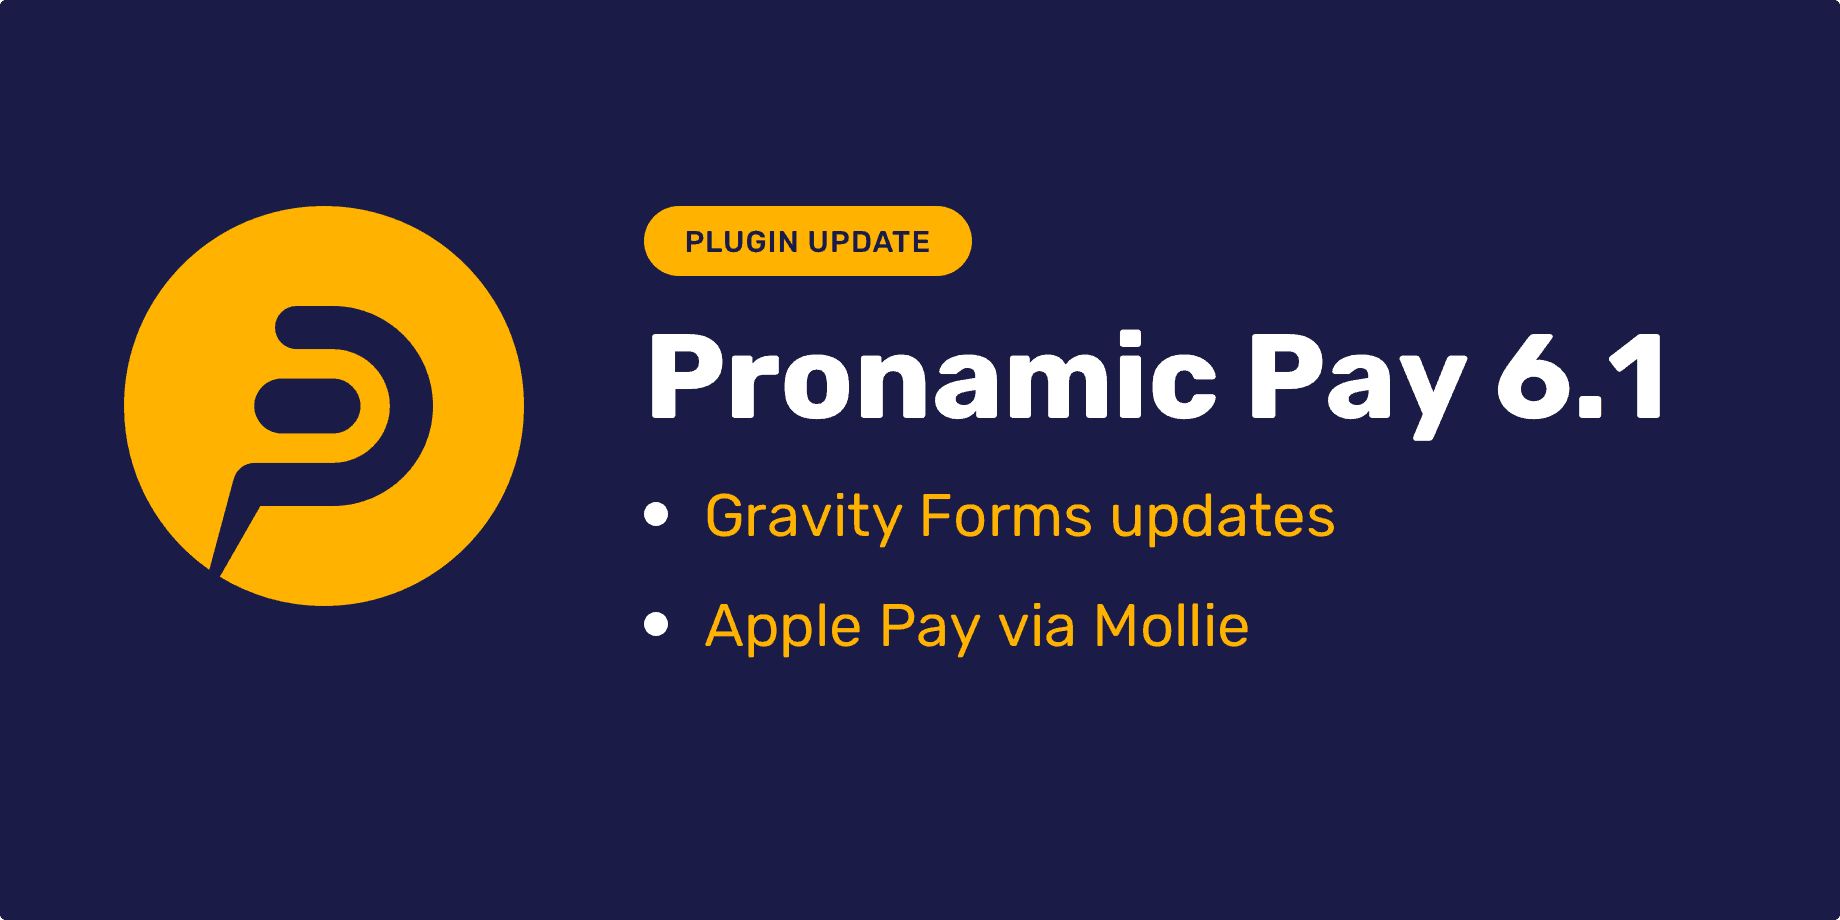 Pronamic Pay 6.1